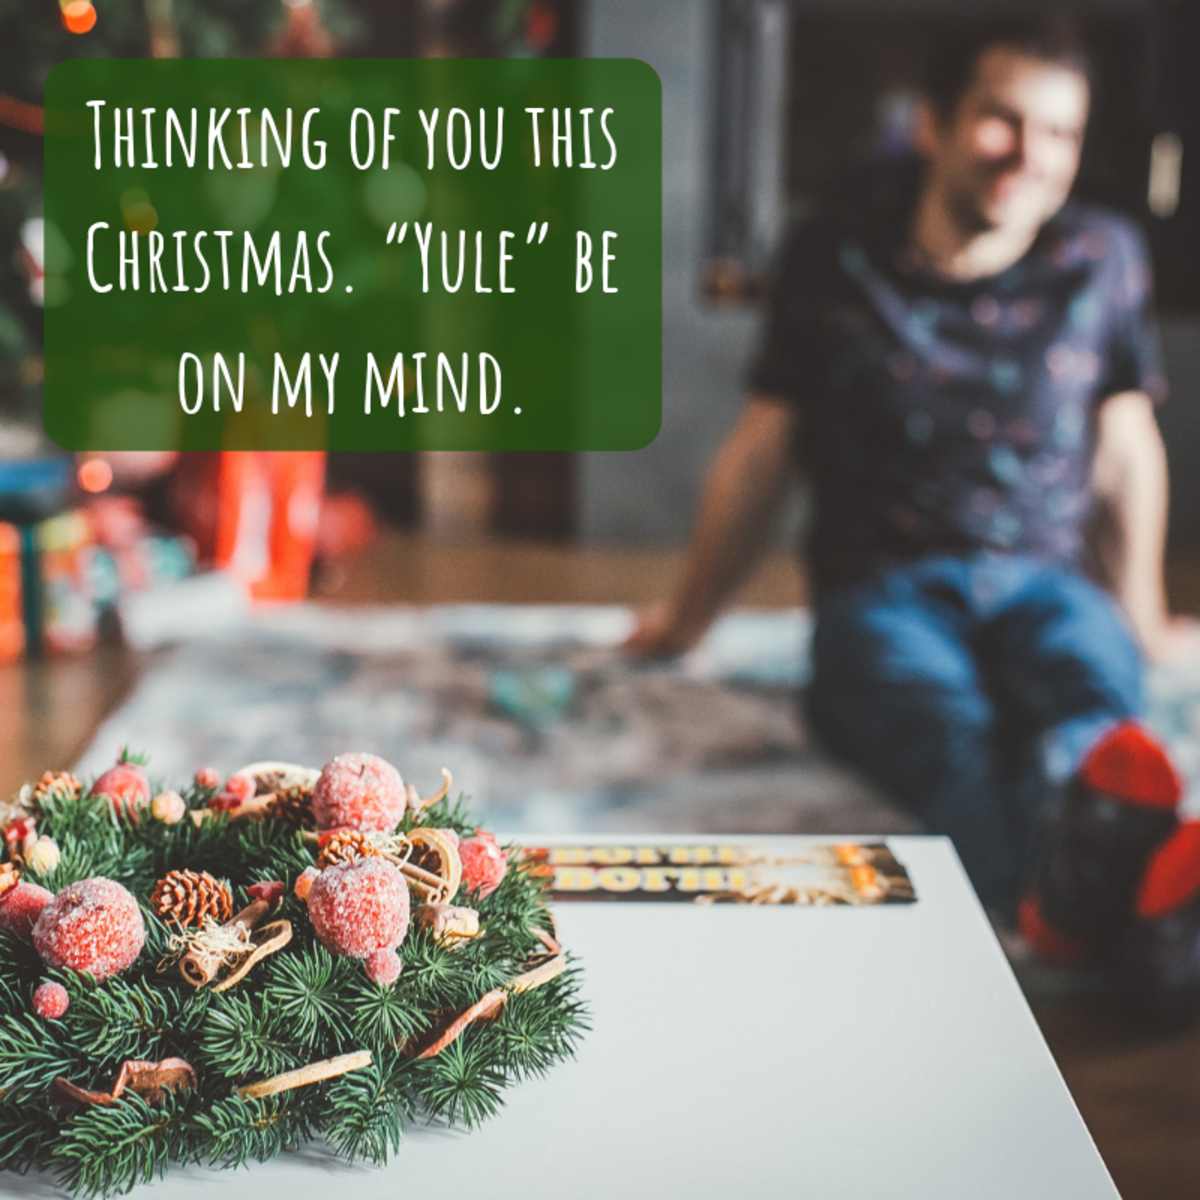 Sometimes fewer words can make a bigger impact! Here are some short and sweet holiday wishes.